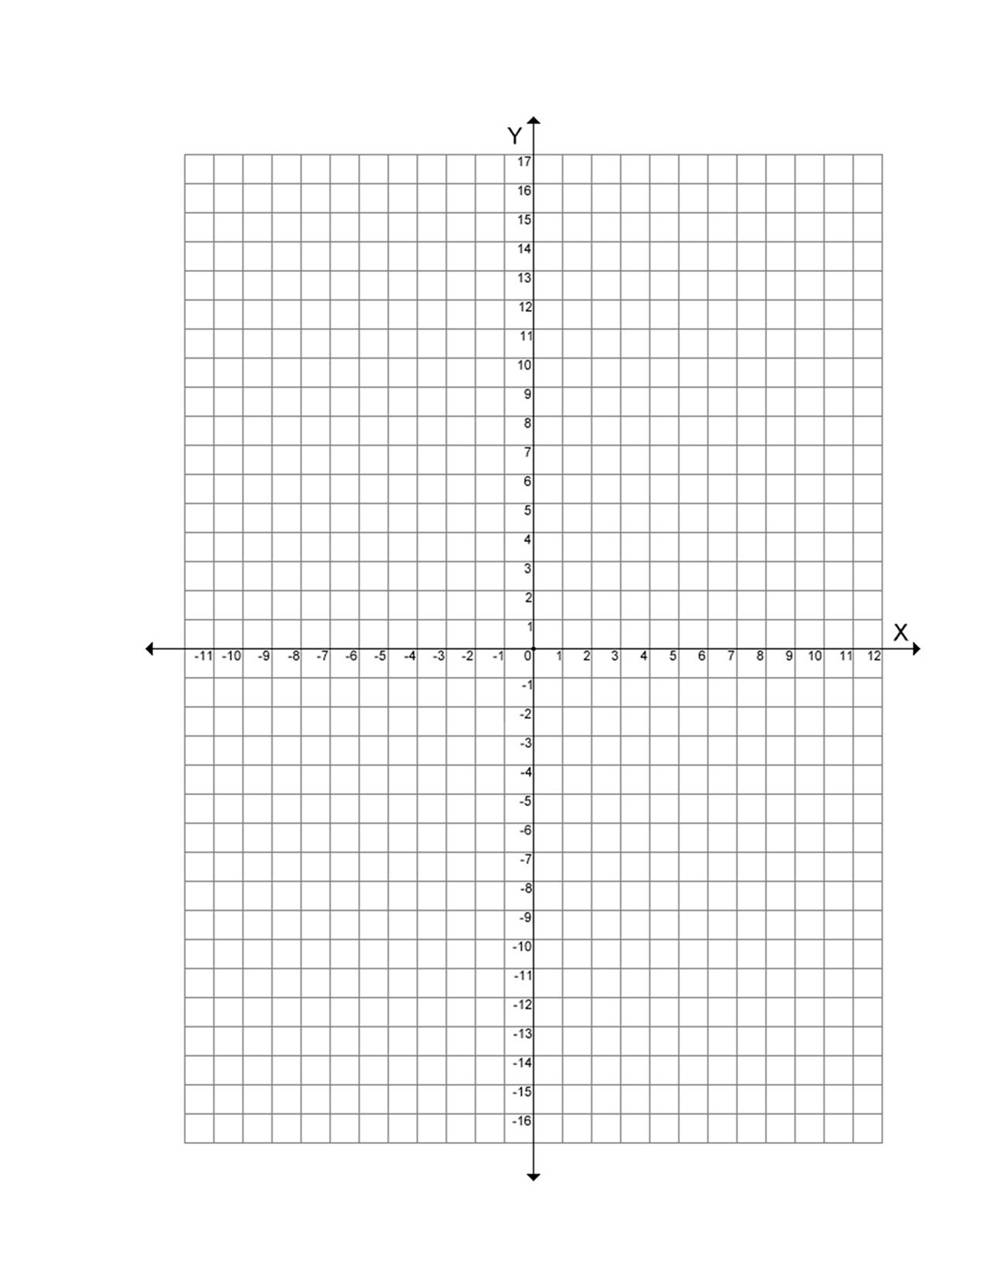 worksheet Graph Paper With Axis similiar graph paper with x and y axis keywords blank coordinate viewing